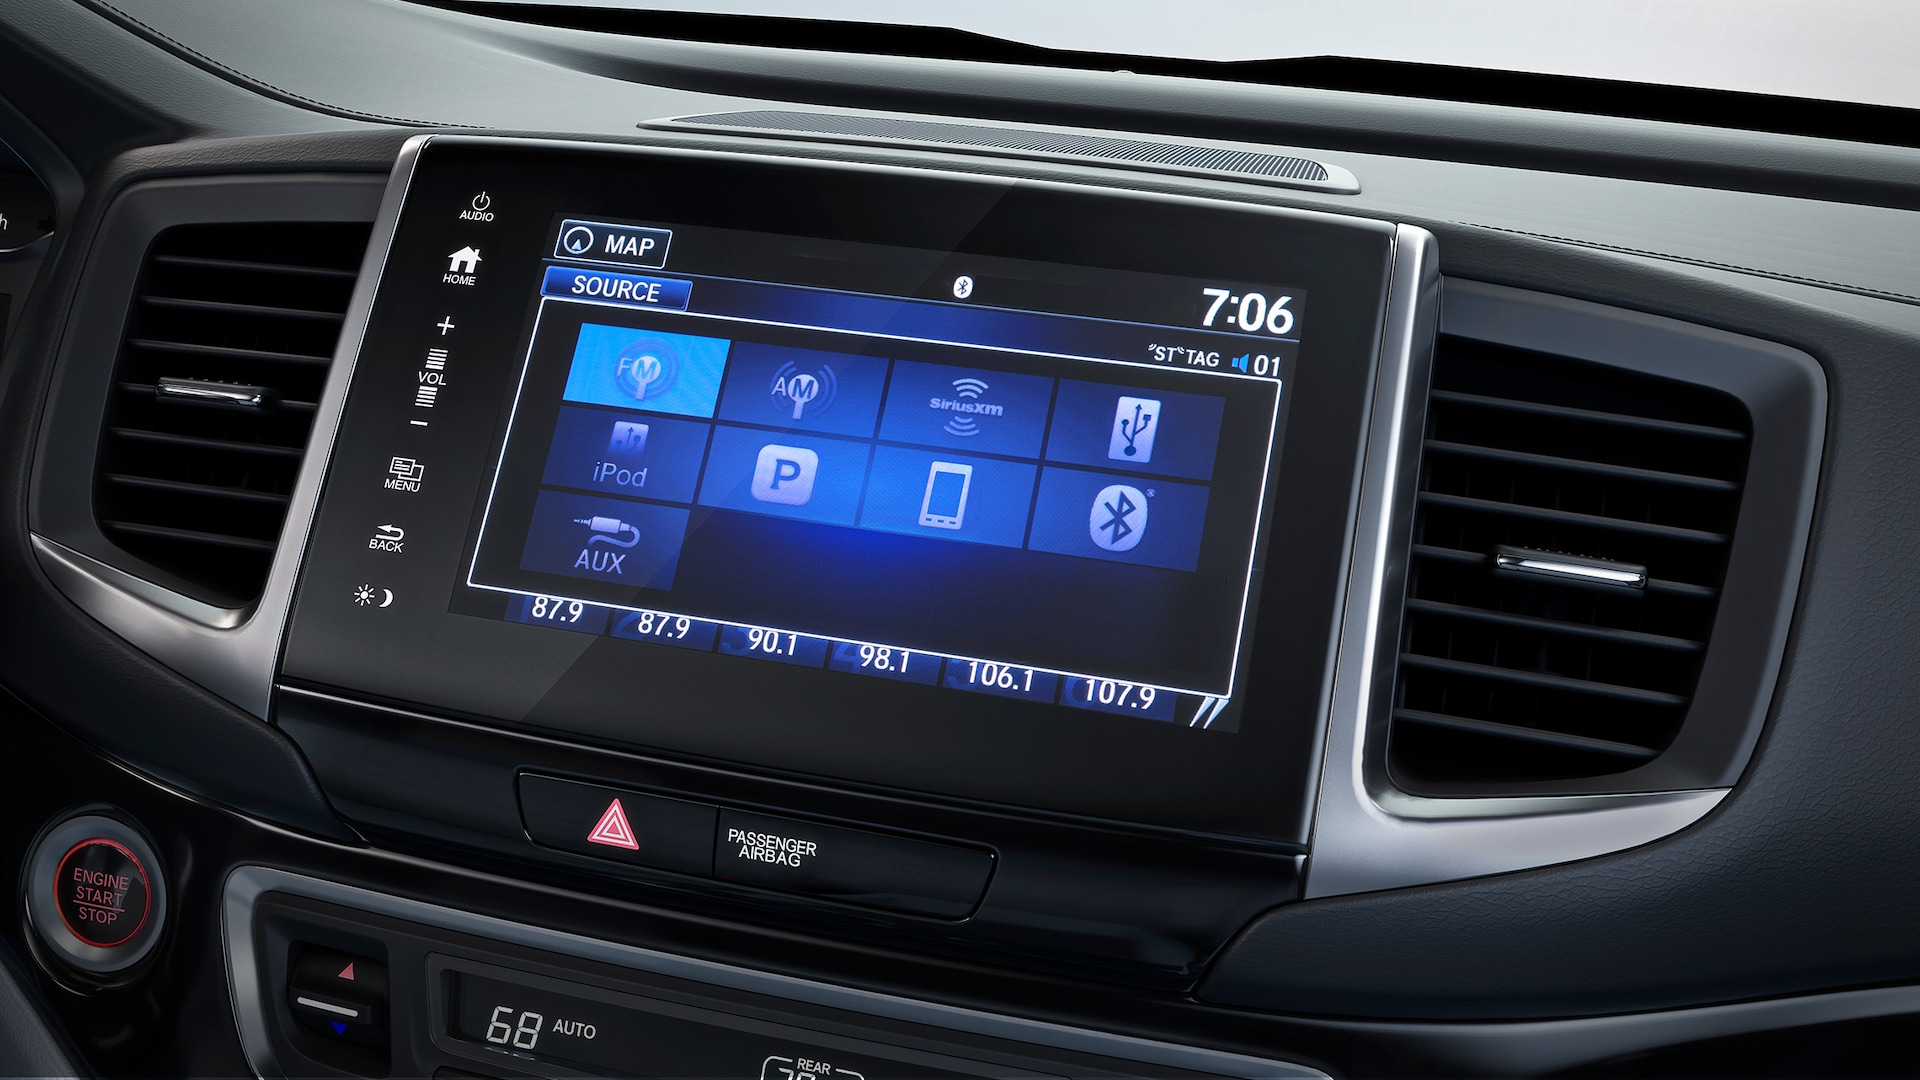 Display Audio touch-screen detail in the 2020 Honda Ridgeline.